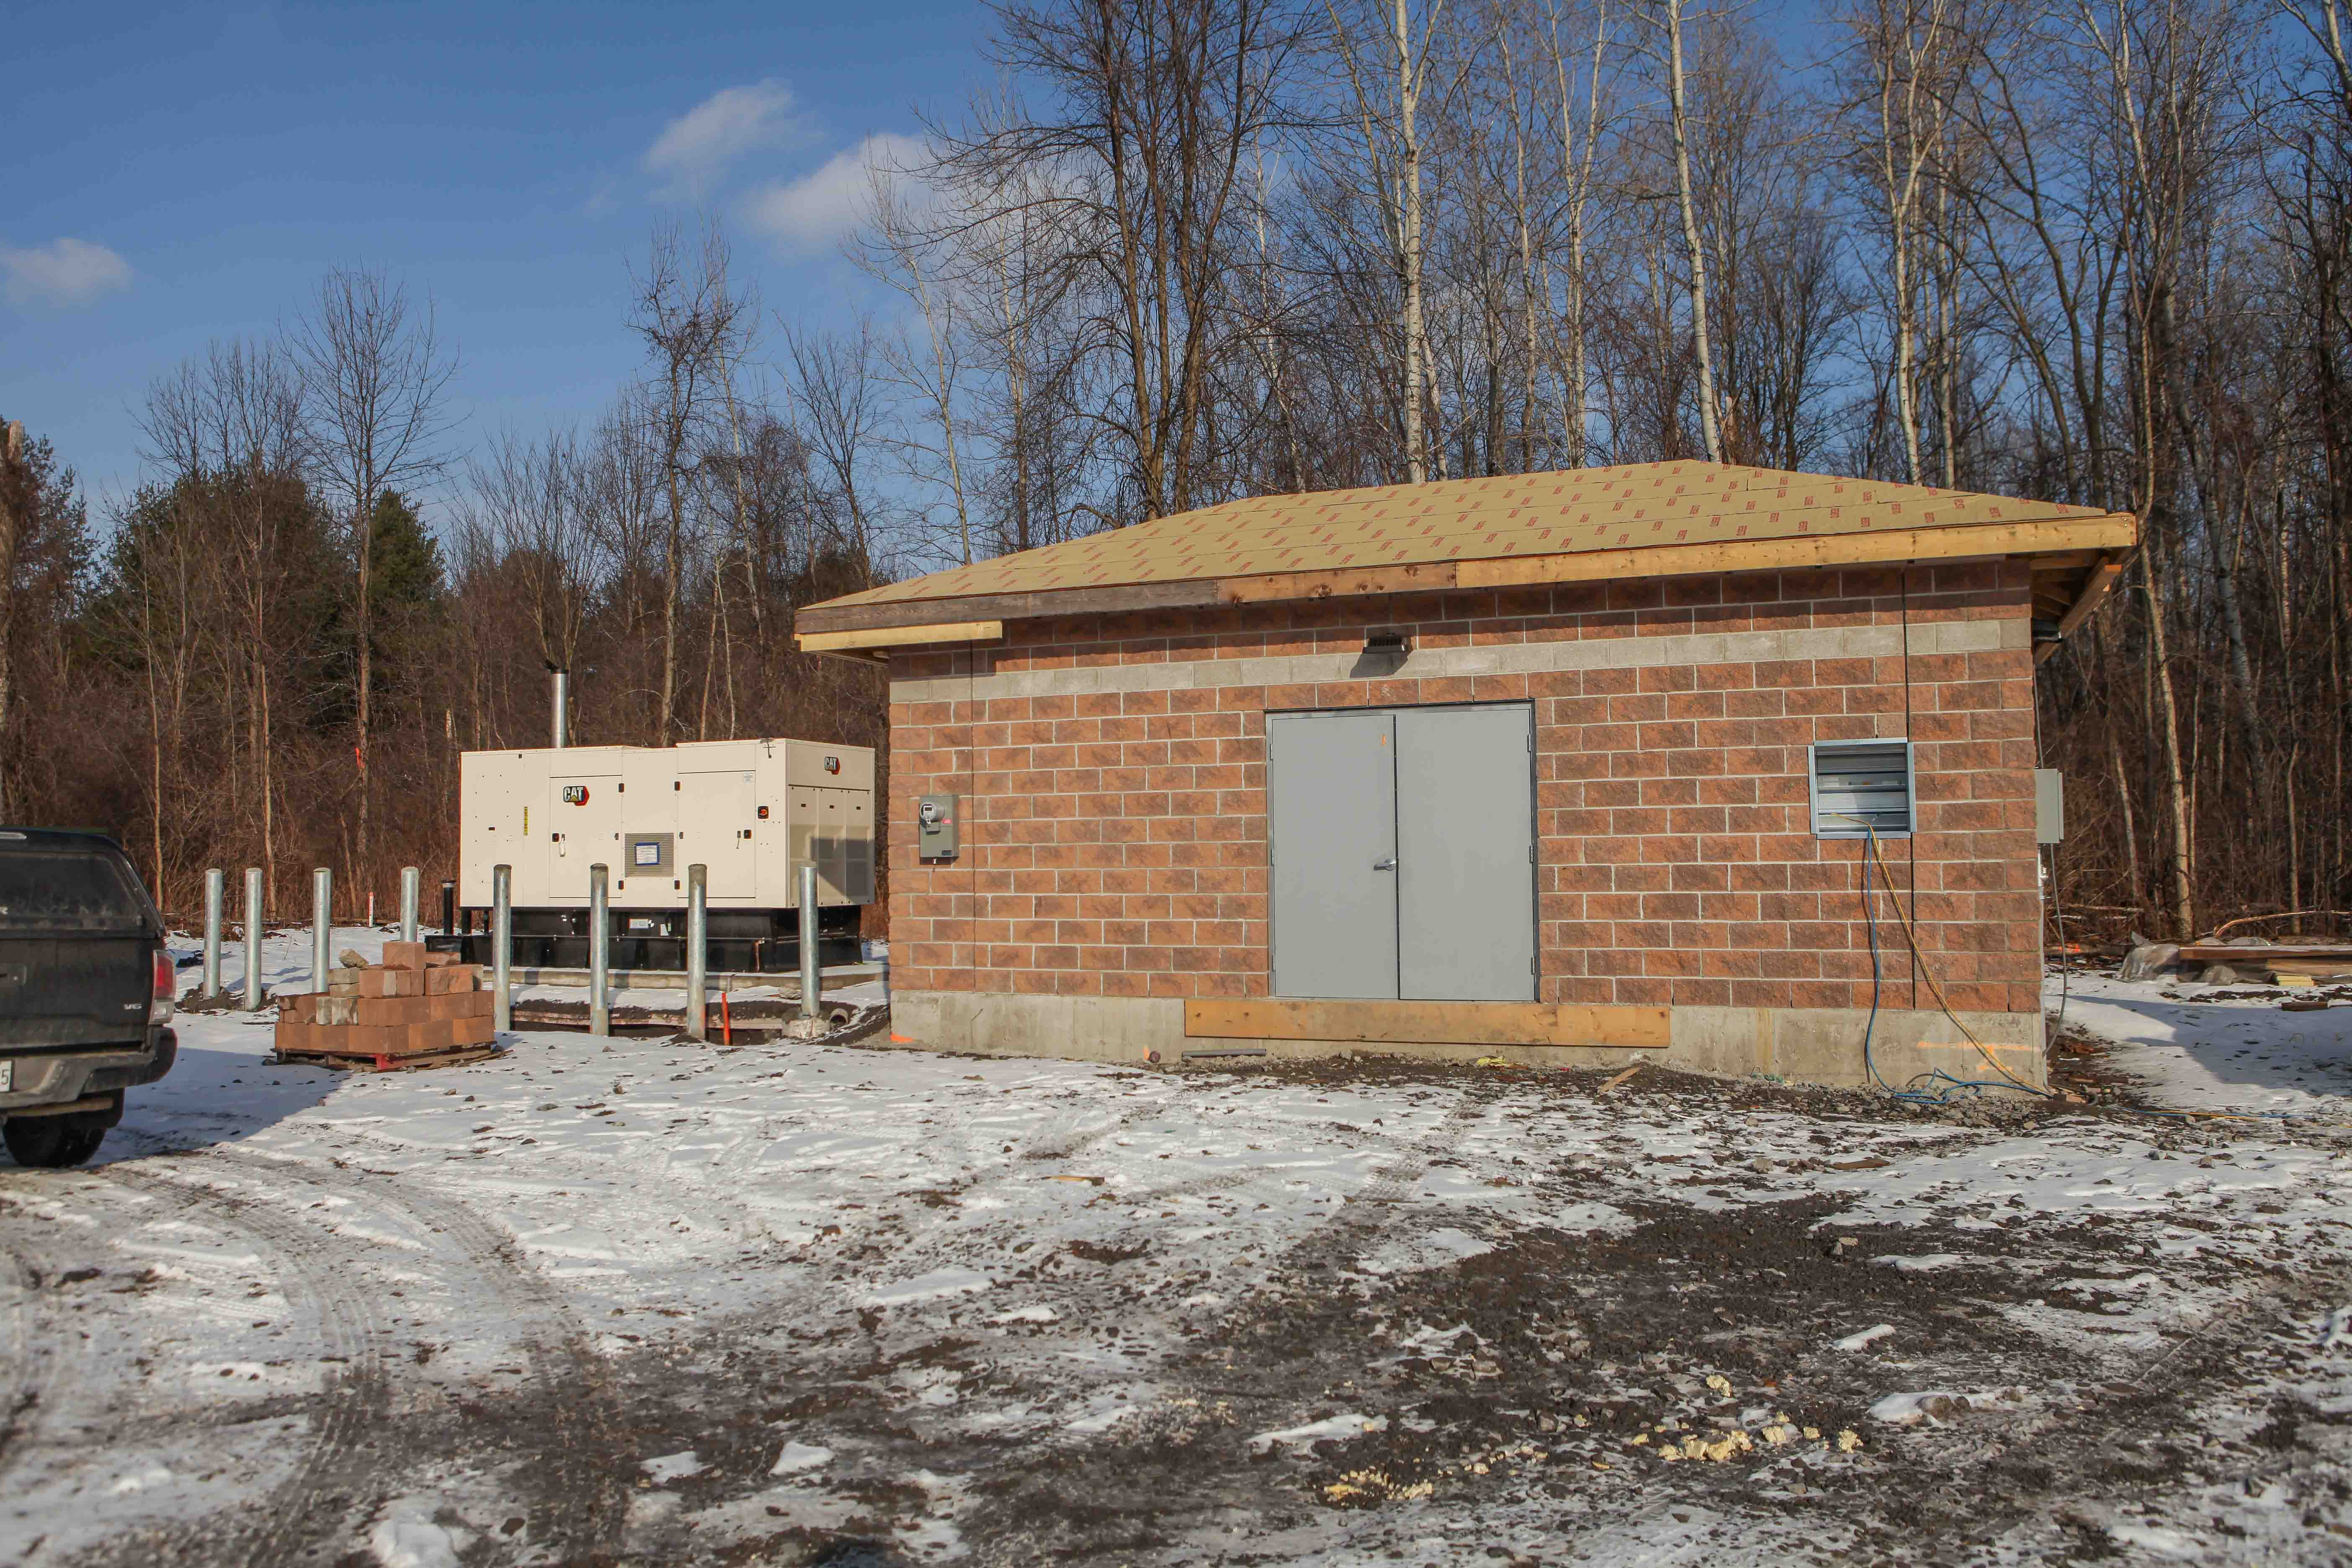 Brookdale North Sewer extension facility